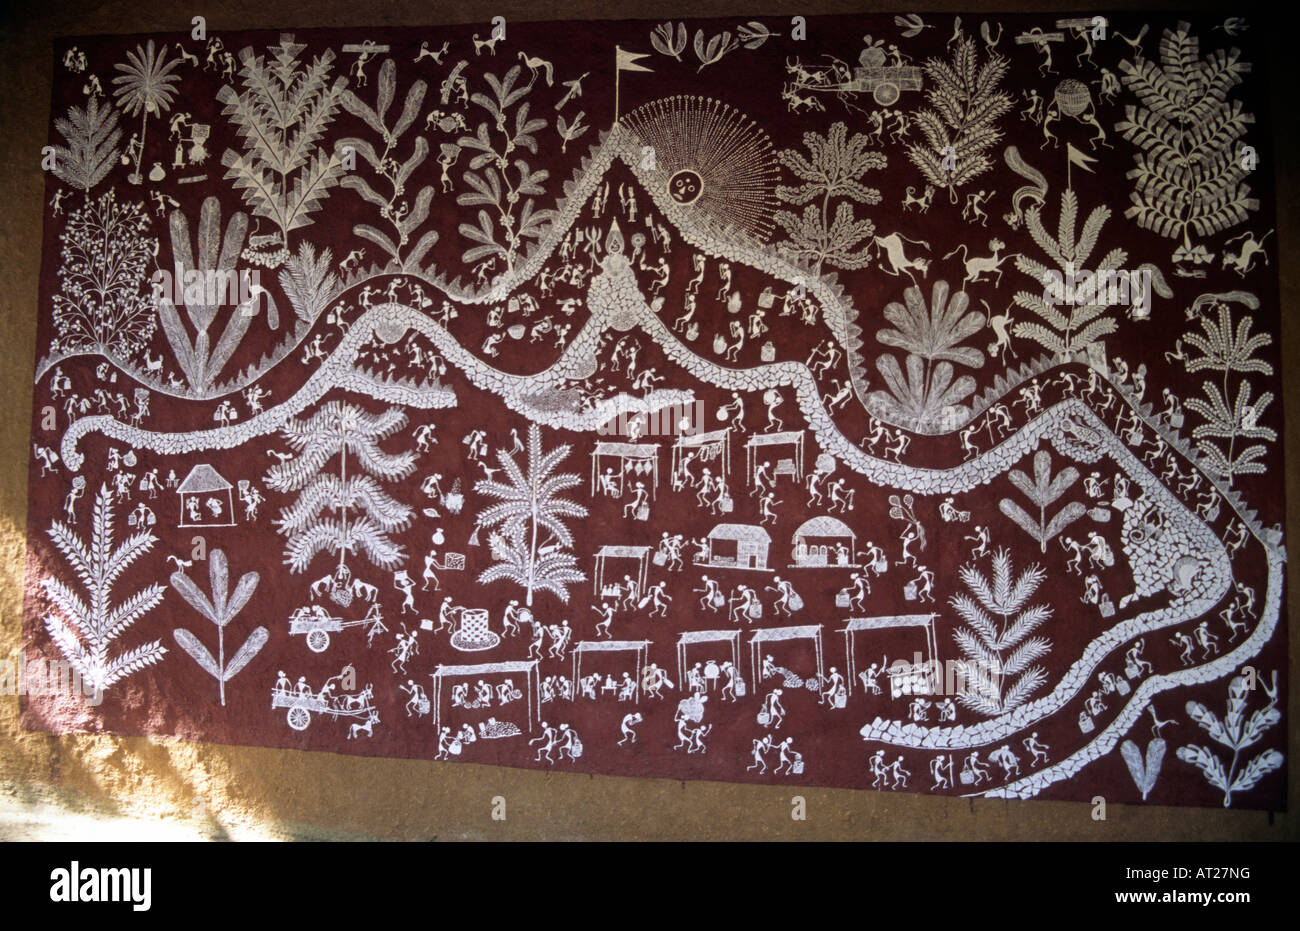 Warli painting on the wall of house warli tribe thane maharashtra warli painting on the wall of house warli tribe thane maharashtra india altavistaventures Image collections